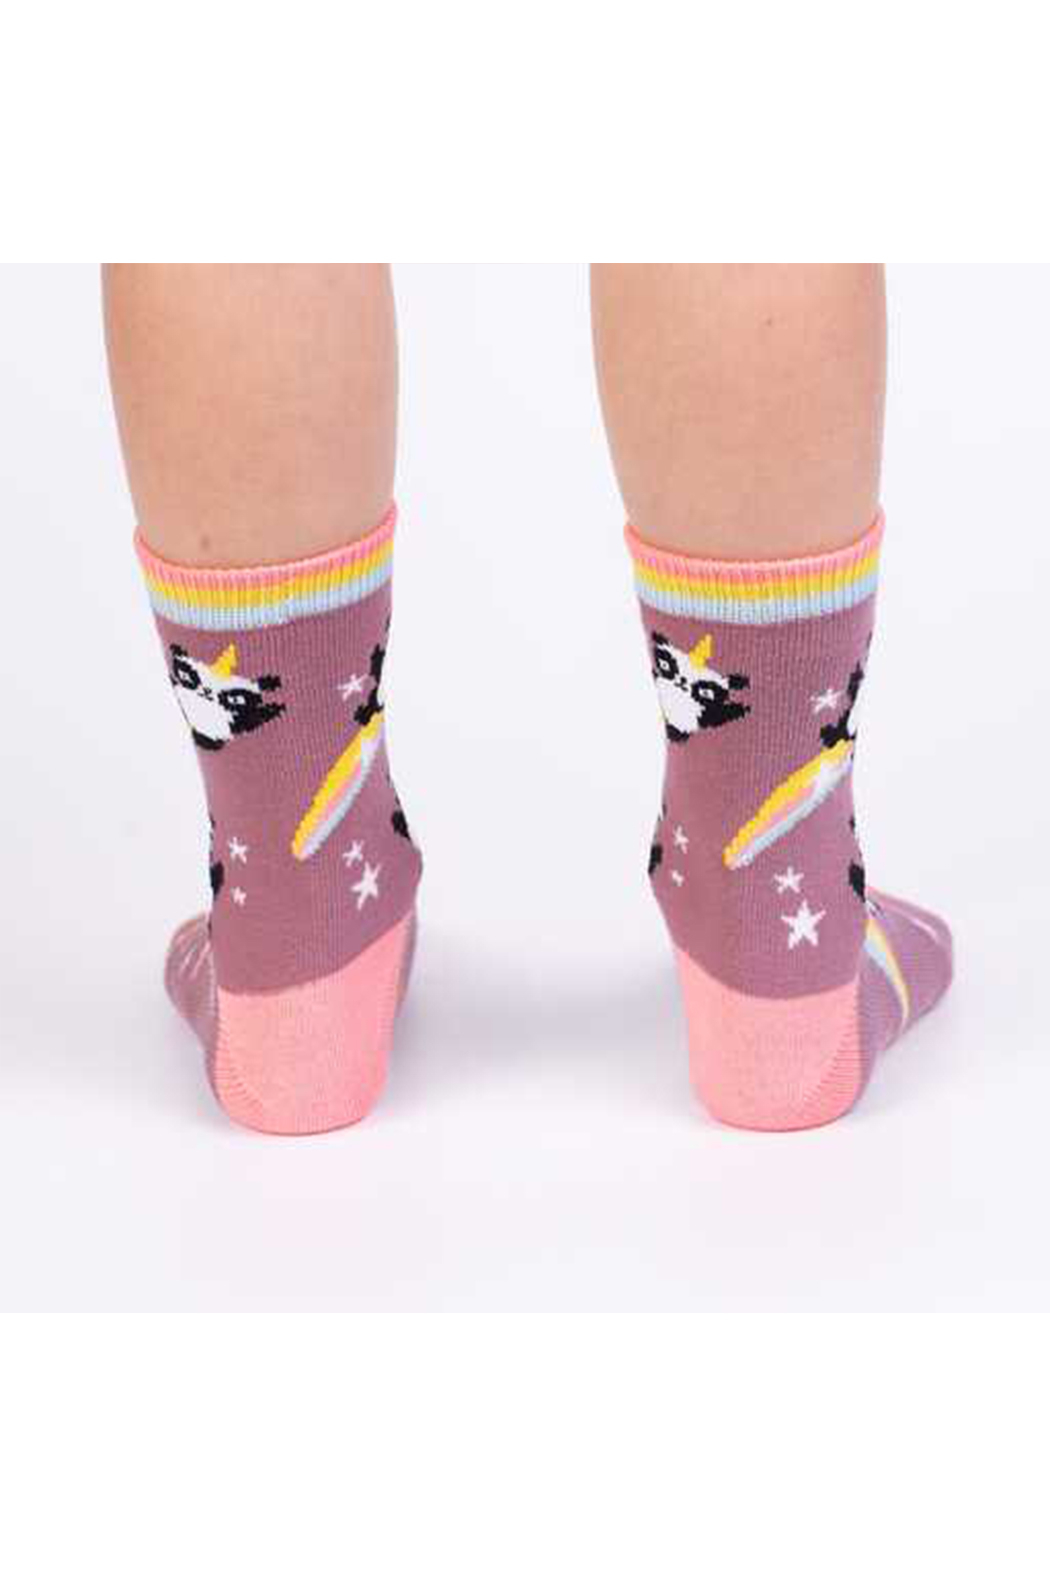 Sock it to me Pandacorn Crew Socks - Youth & Junior - Front Full Image